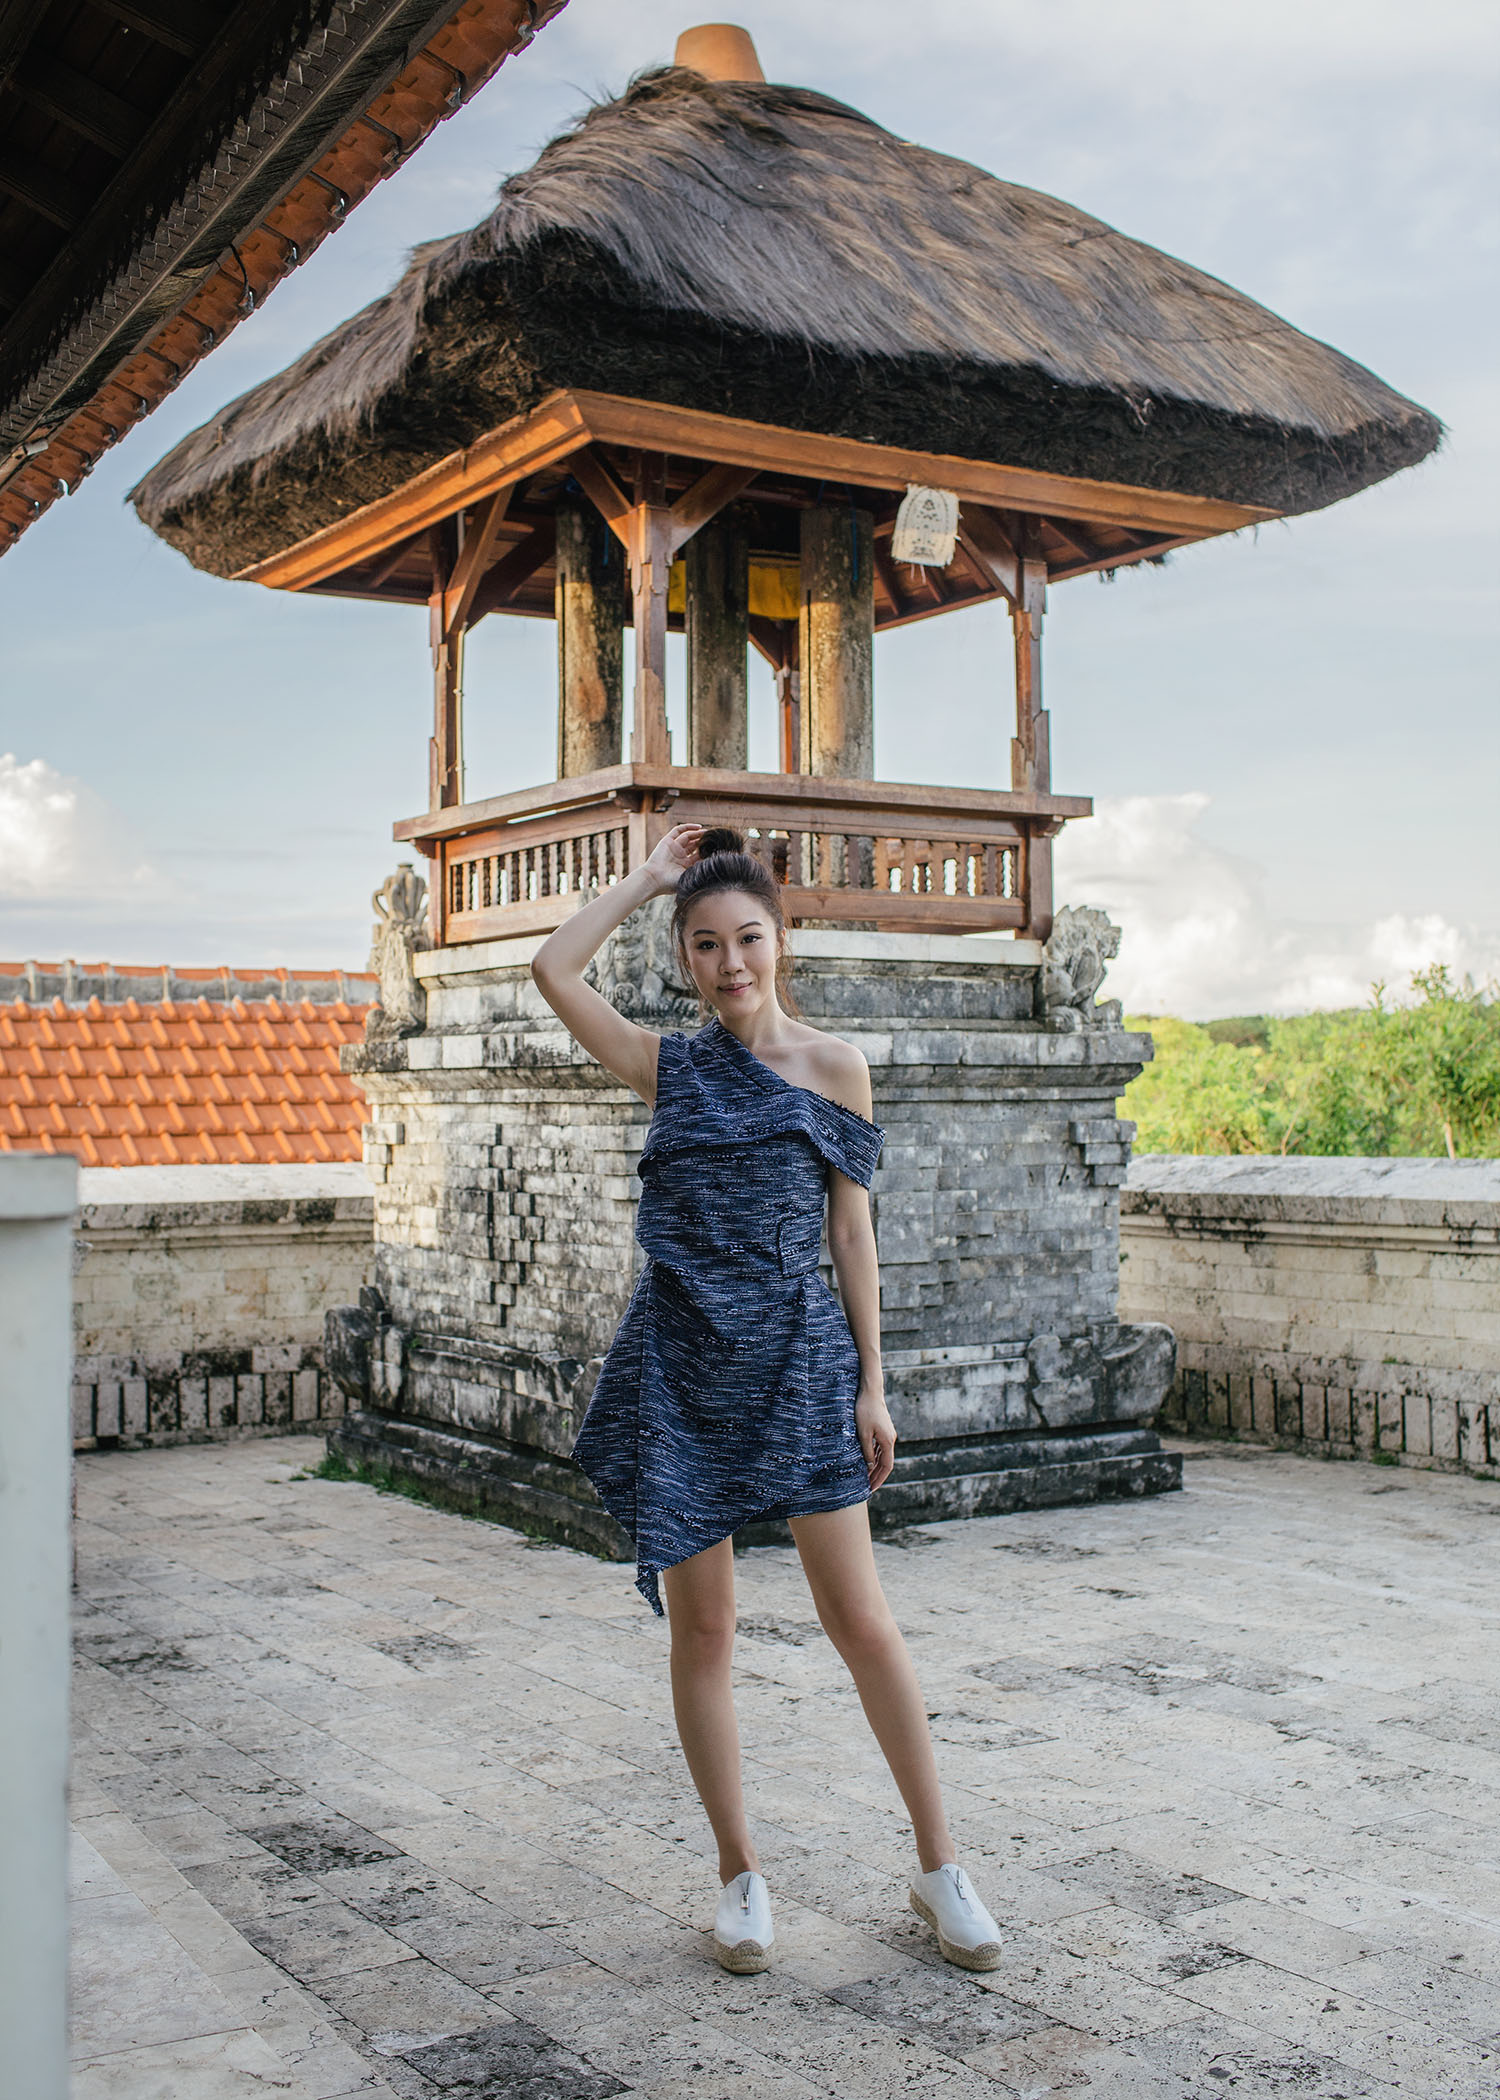 Fashion and travel blogger influencer Jenny Tsang of Tsangtastic traveling in Bali, Indonesia, wearing ACLER Top, at Uluwatu Temple.